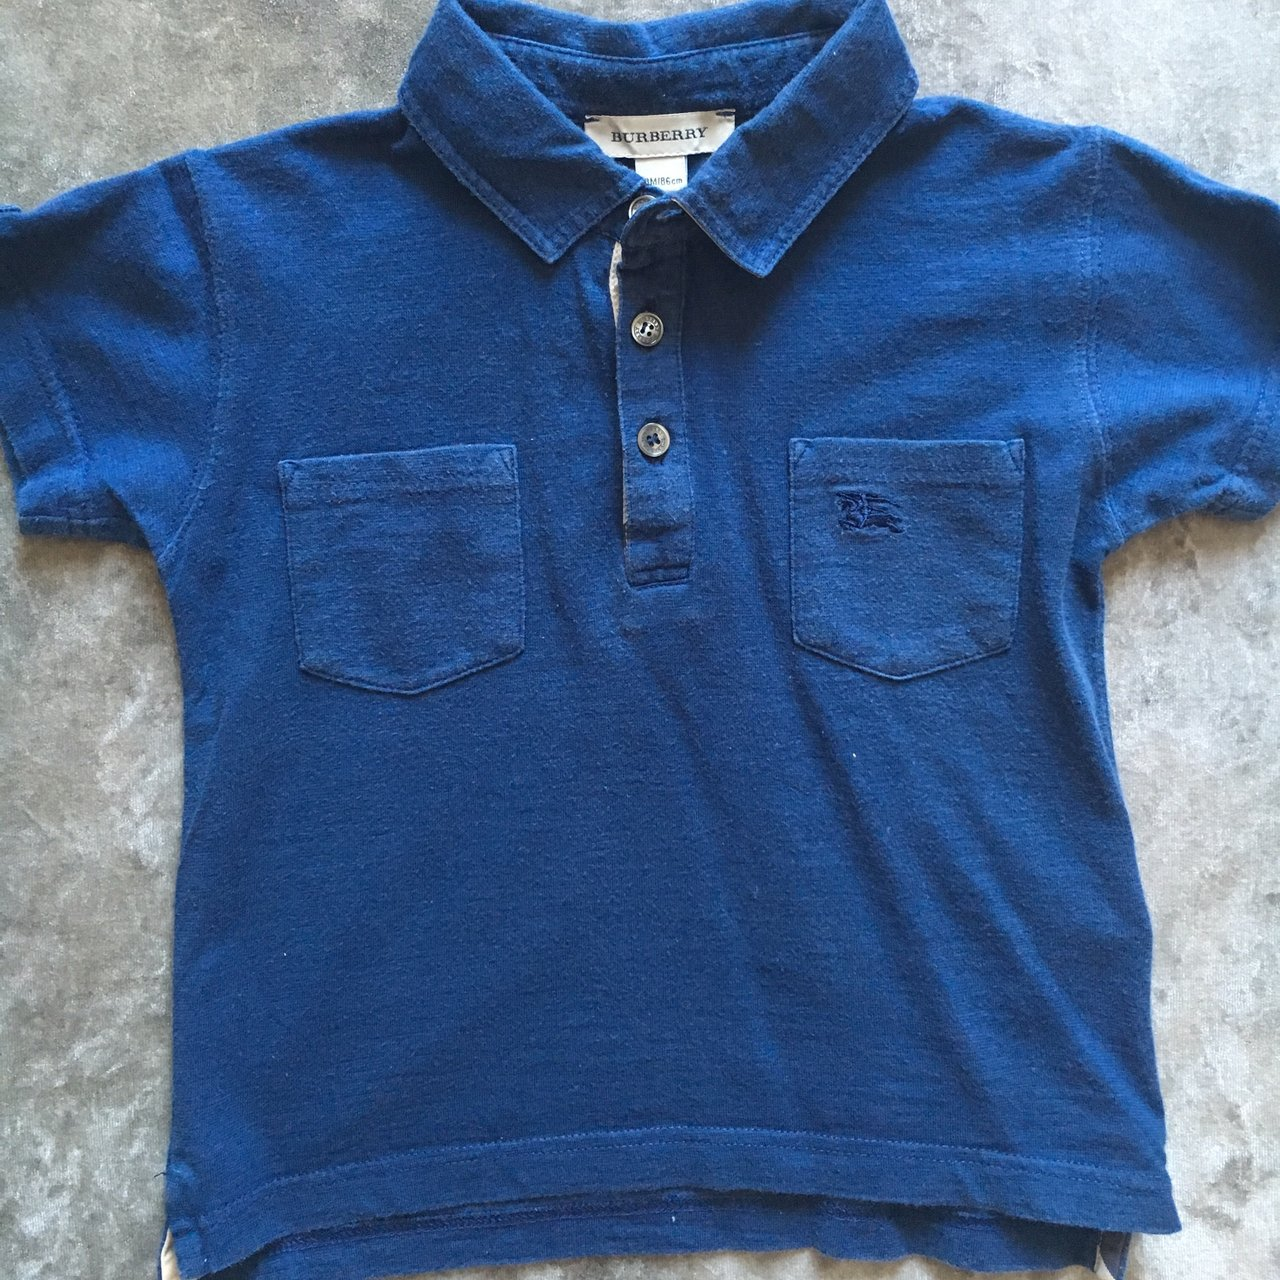 98fab412 AUTHENTIC baby boy toddler Burberry polo shirt. Very good at - Depop